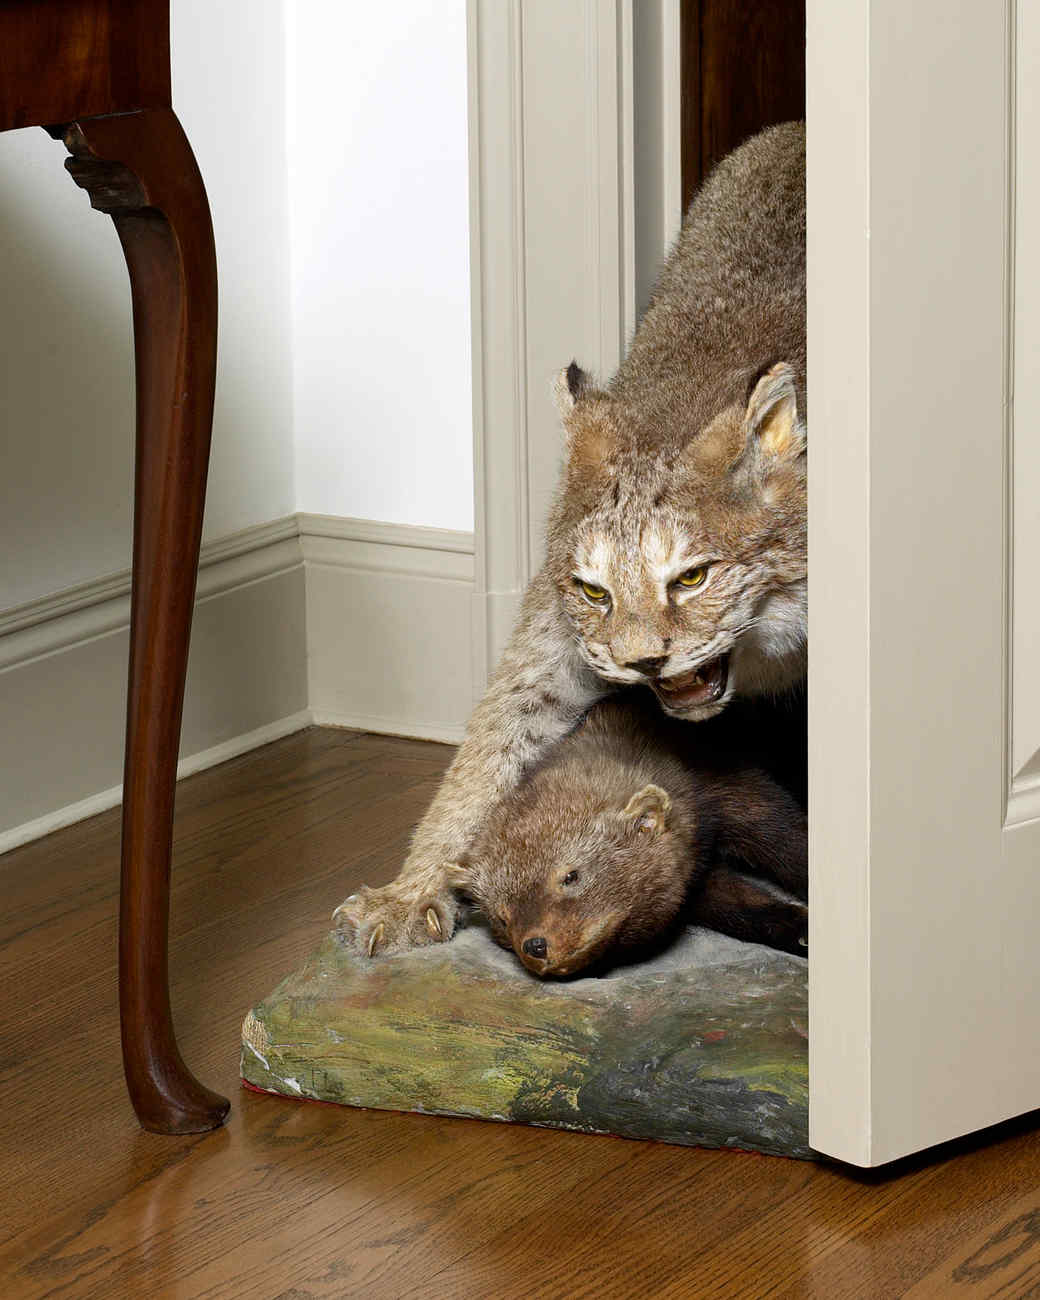 lynx-taxidermy-1011mld106418.jpg